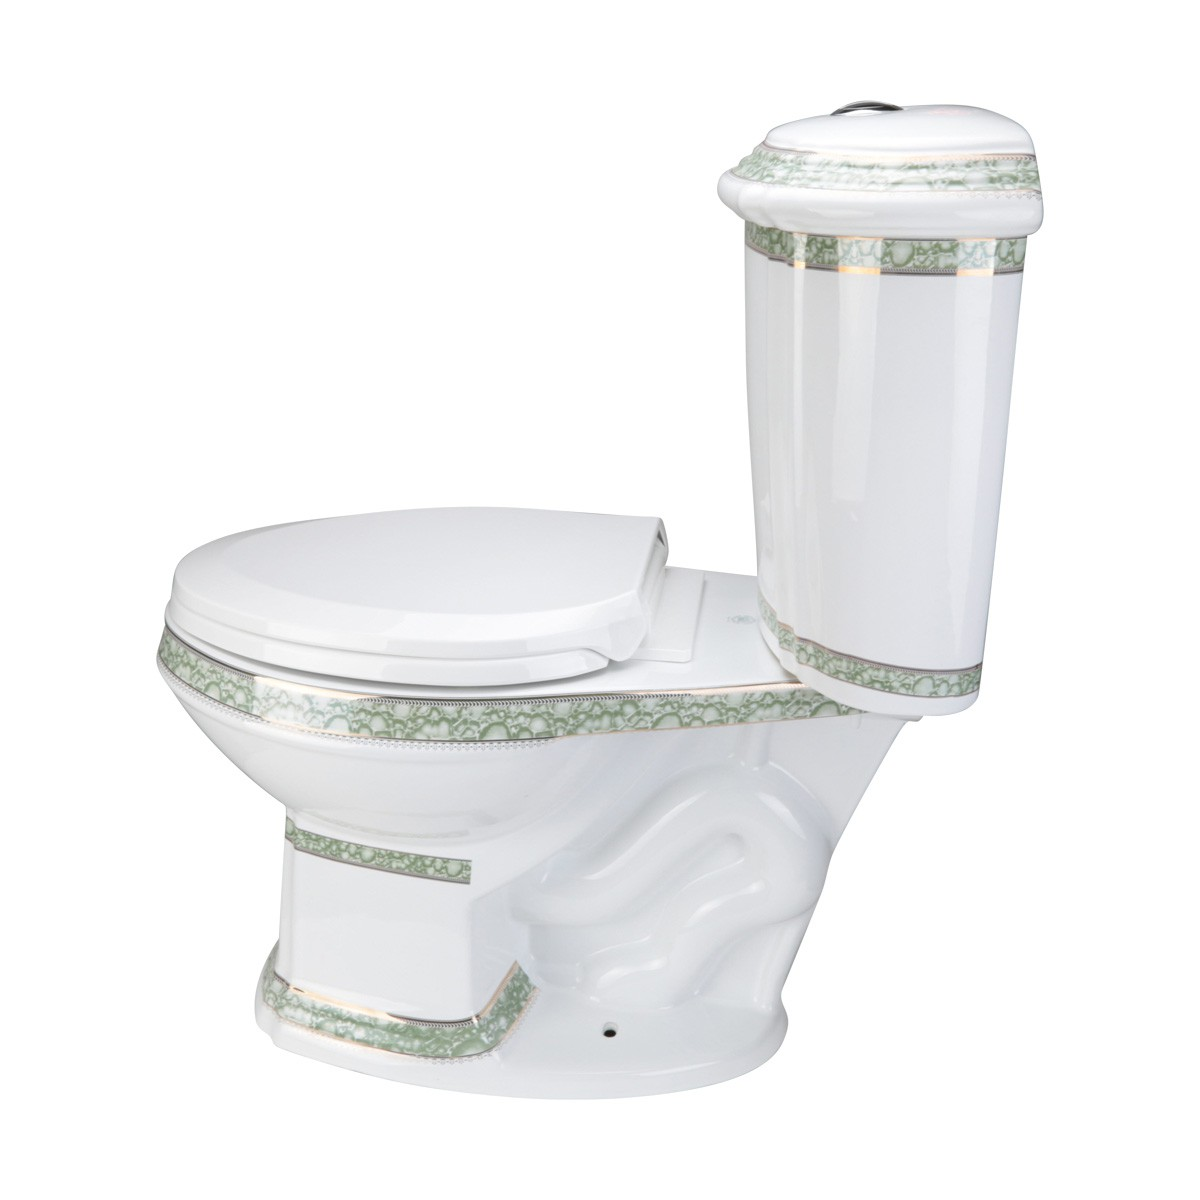 Dual Flush White Toilet Two Piece Elongated And Green